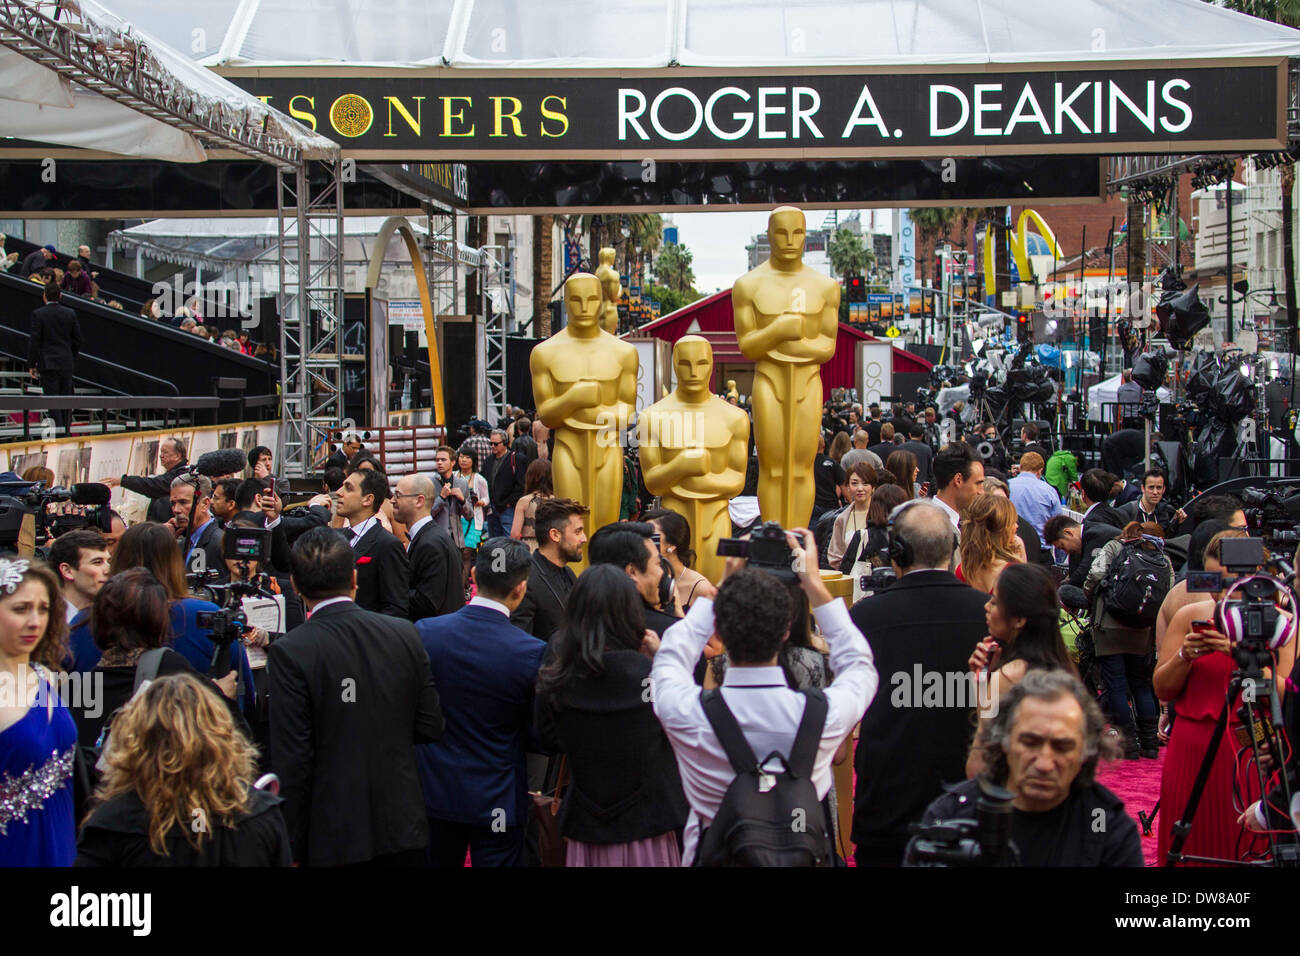 Los Angeles, CA, USA. 3rd March, 2014. Media members crowd in the red carpet arrival area in the Dolby Theatre before the 86th Academy Awards in Los Angeles, the United States, March 2, 2014. Credit:  Xinhua/Alamy Live News - Stock Image